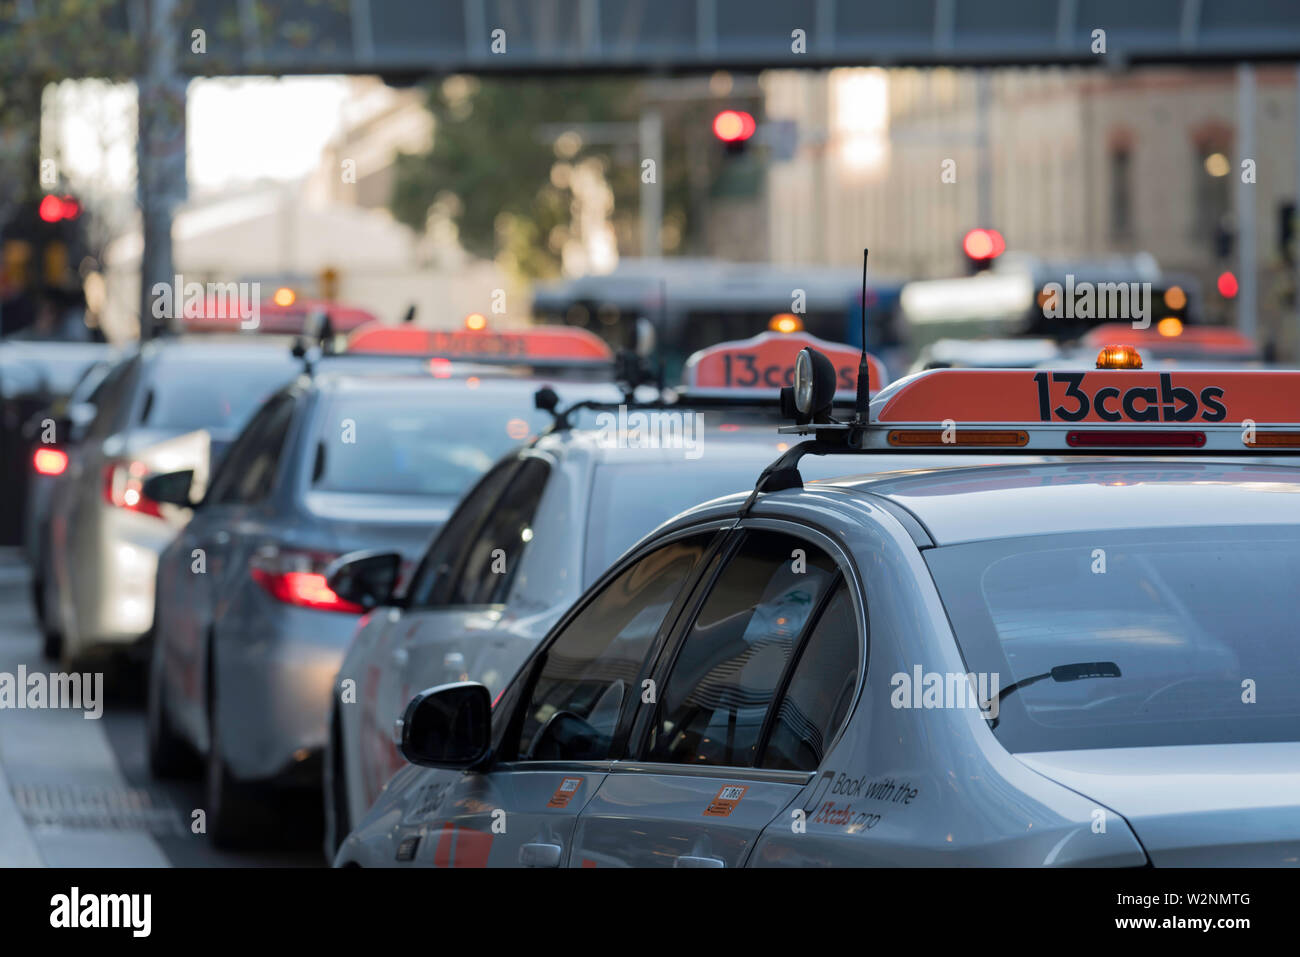 A line of taxis wait with their light on outside a building in Sydney in the early evening - Stock Image